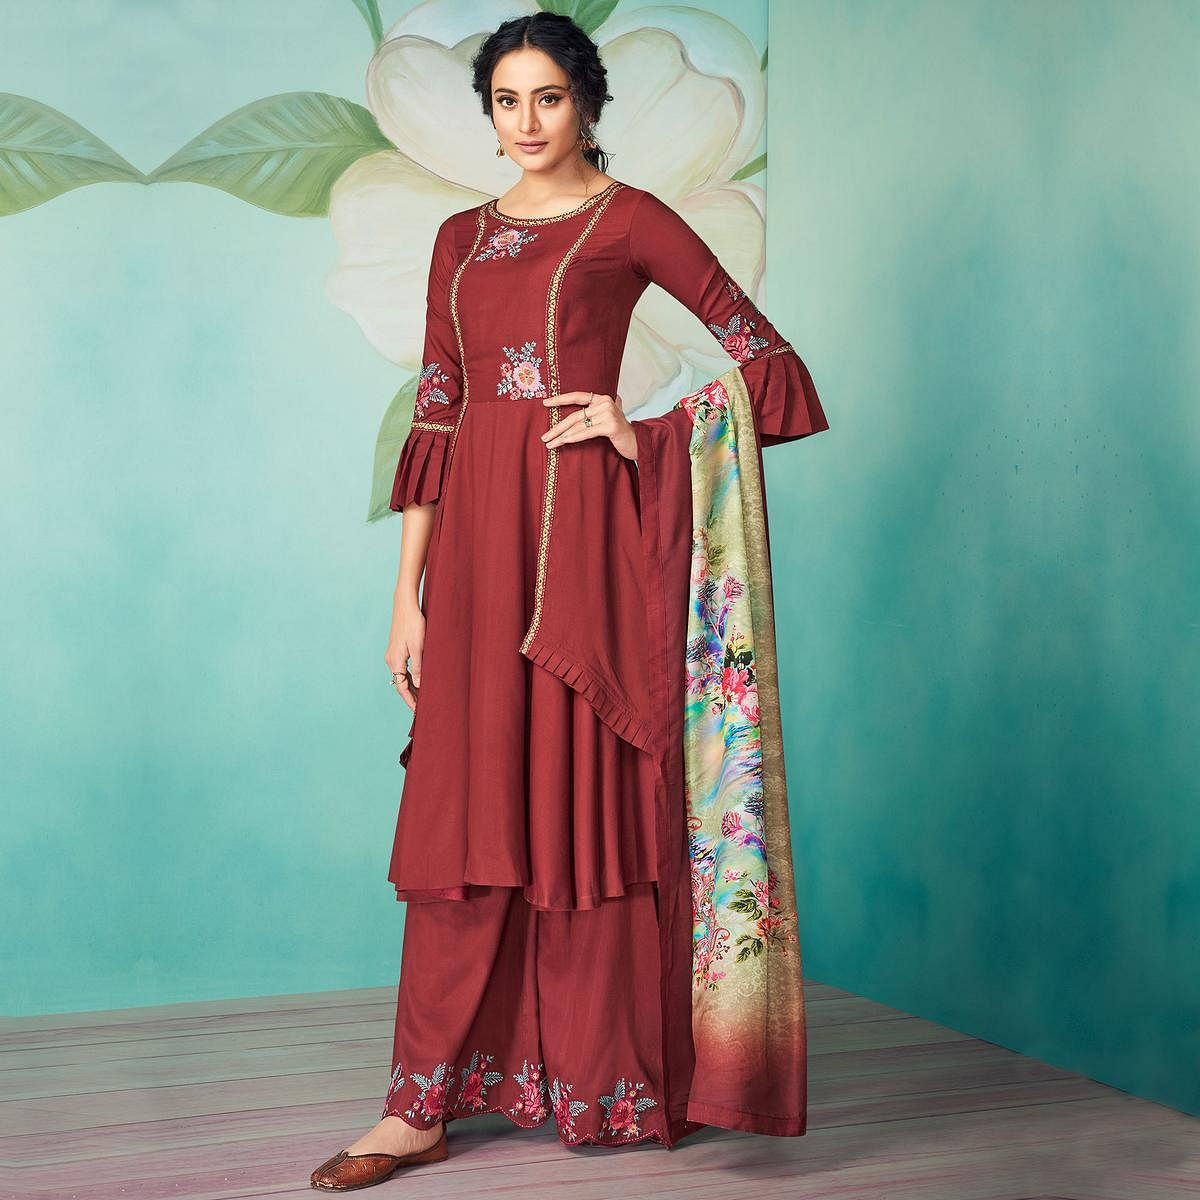 Elegant Maroon Colored Party Wear Floral Embroidered Muslin Cotton Kurti-Palazzo Set With Dupatta